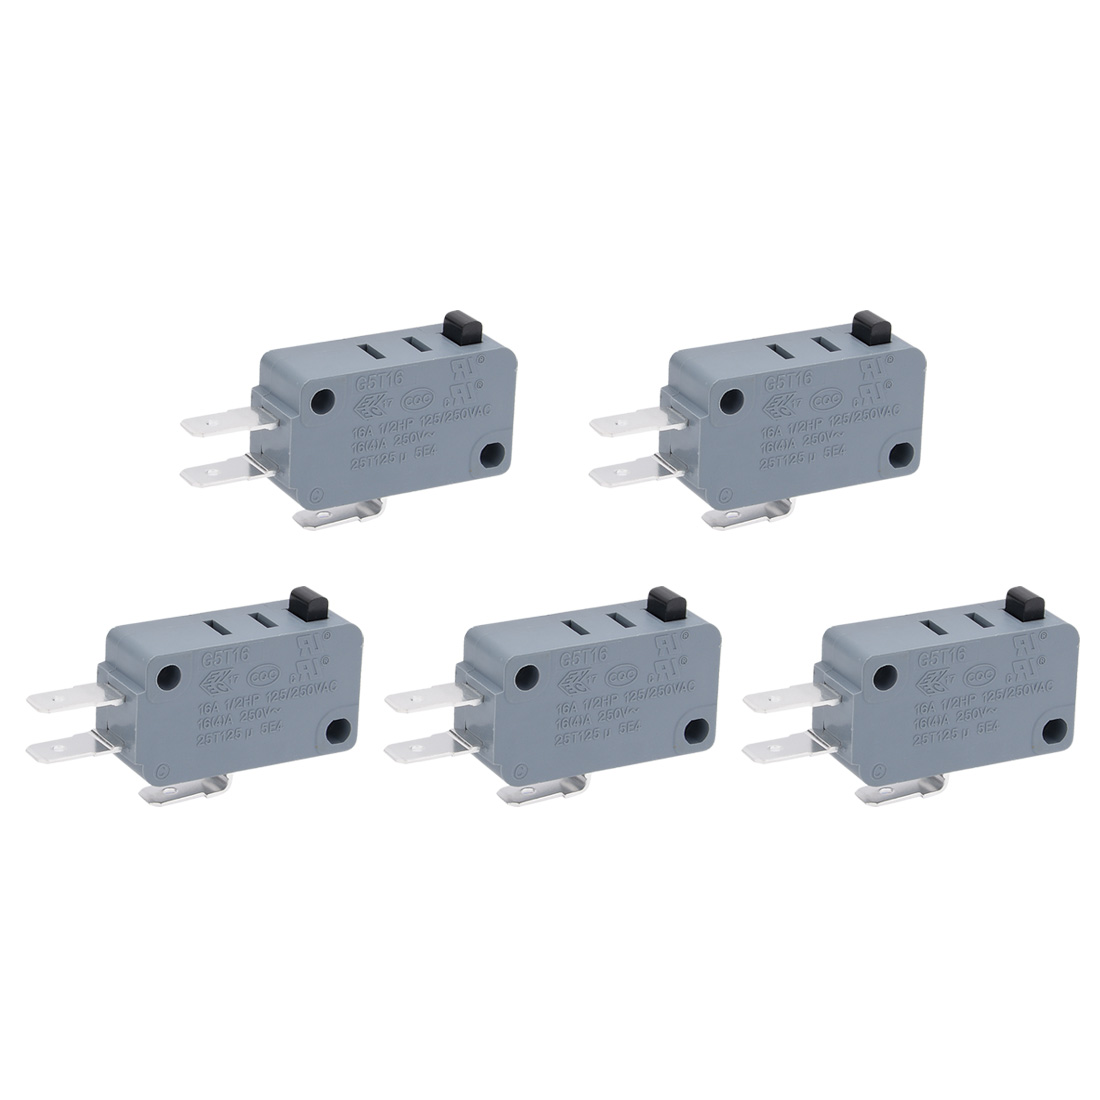 AC 250V 16A 4A Micro Limit Switch Button SPDT Momentary Snap Action 5 Pcs